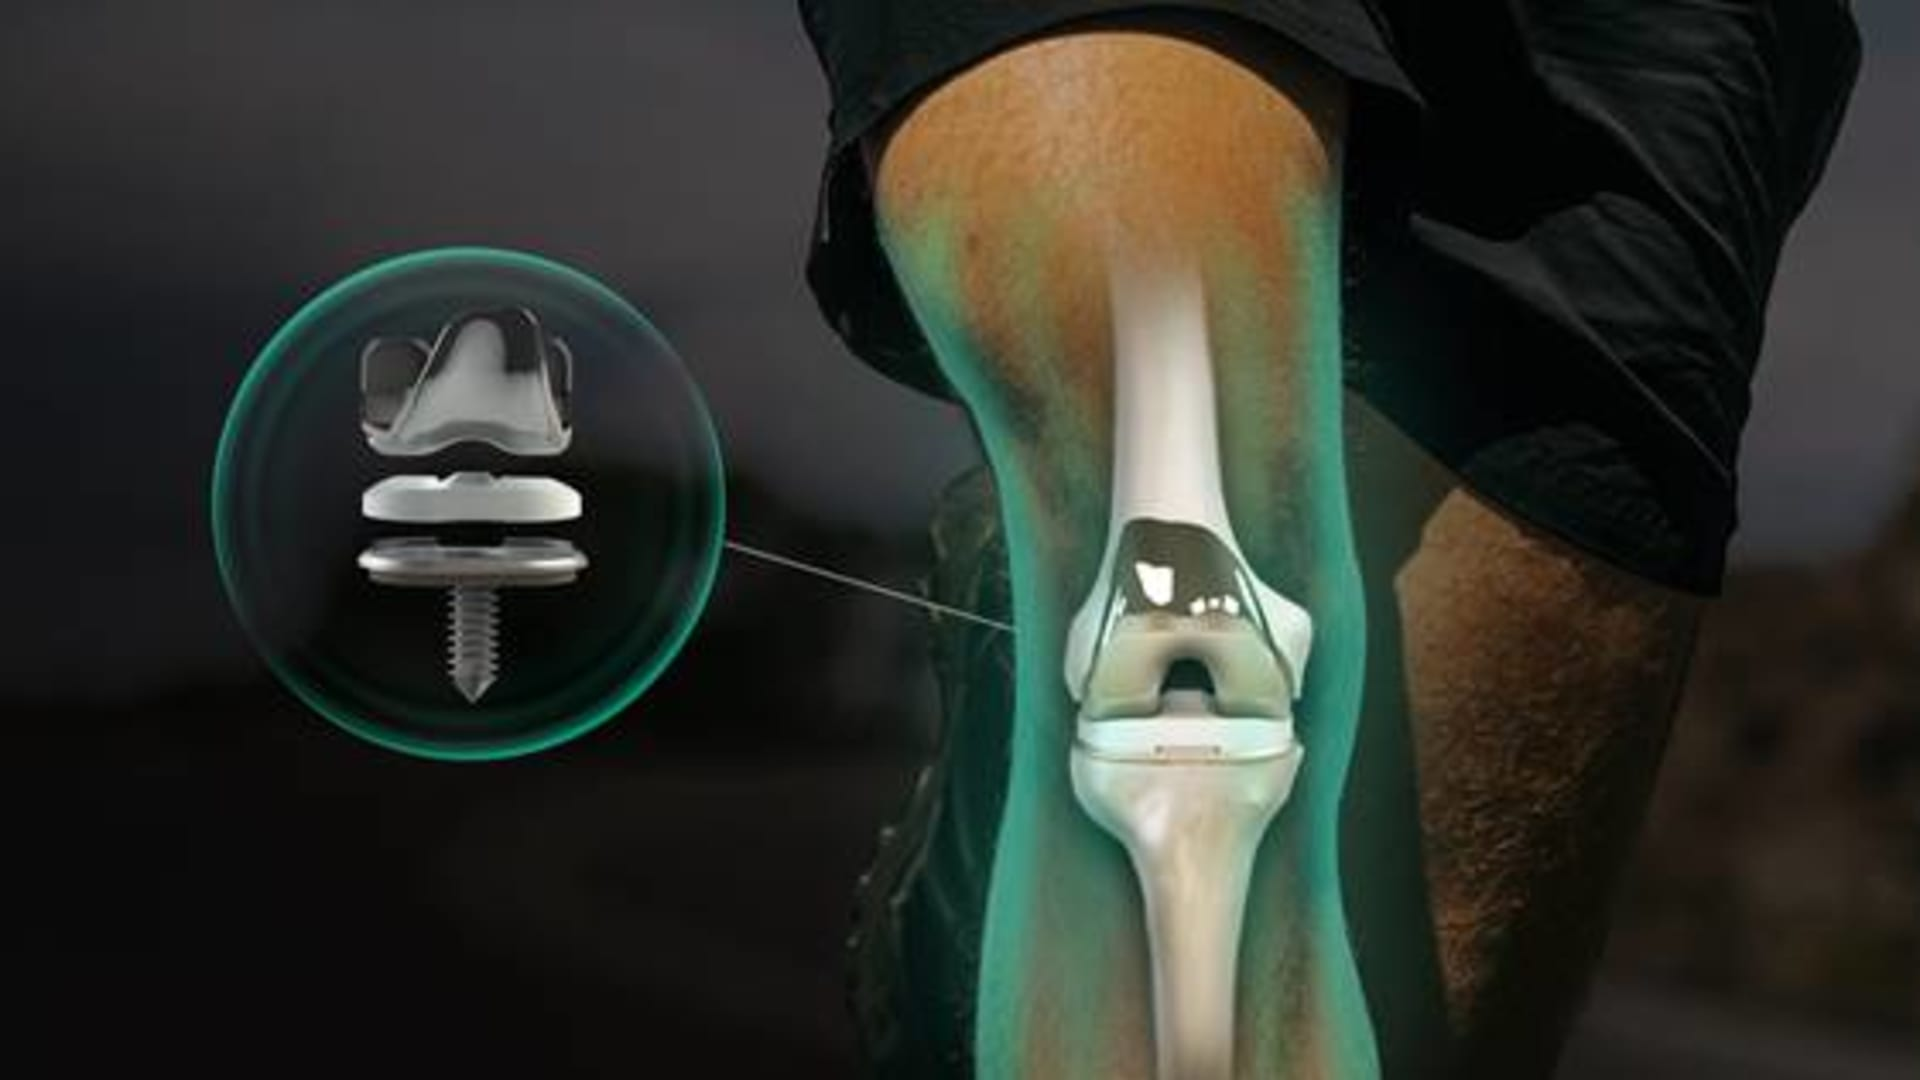 Breakthrough joint surgery tech lifts us out of the dark ages